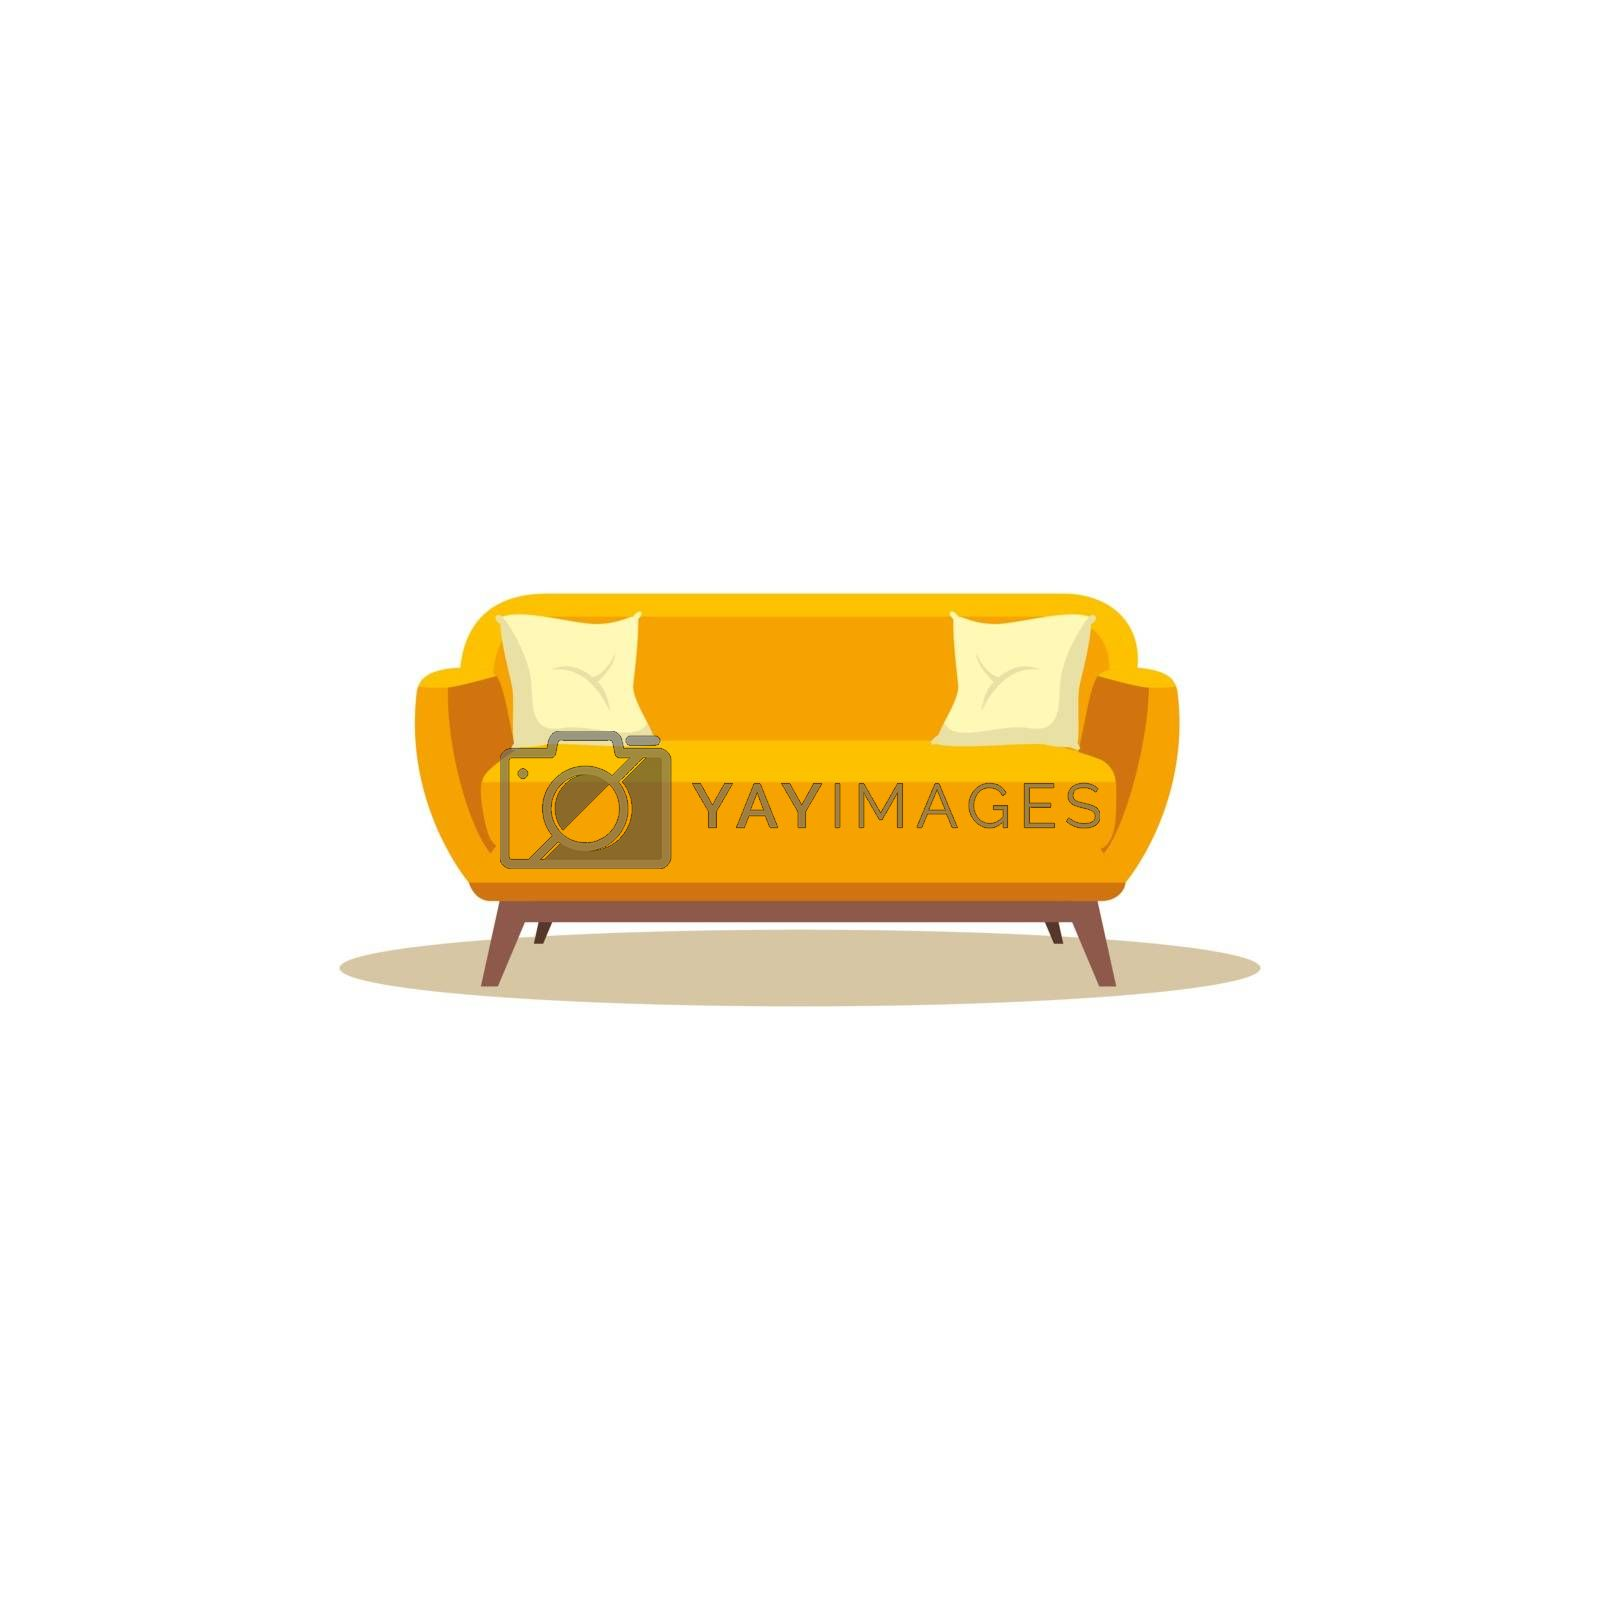 Royalty free image of A yellow-colored sofa vector or color illustration by Morphart